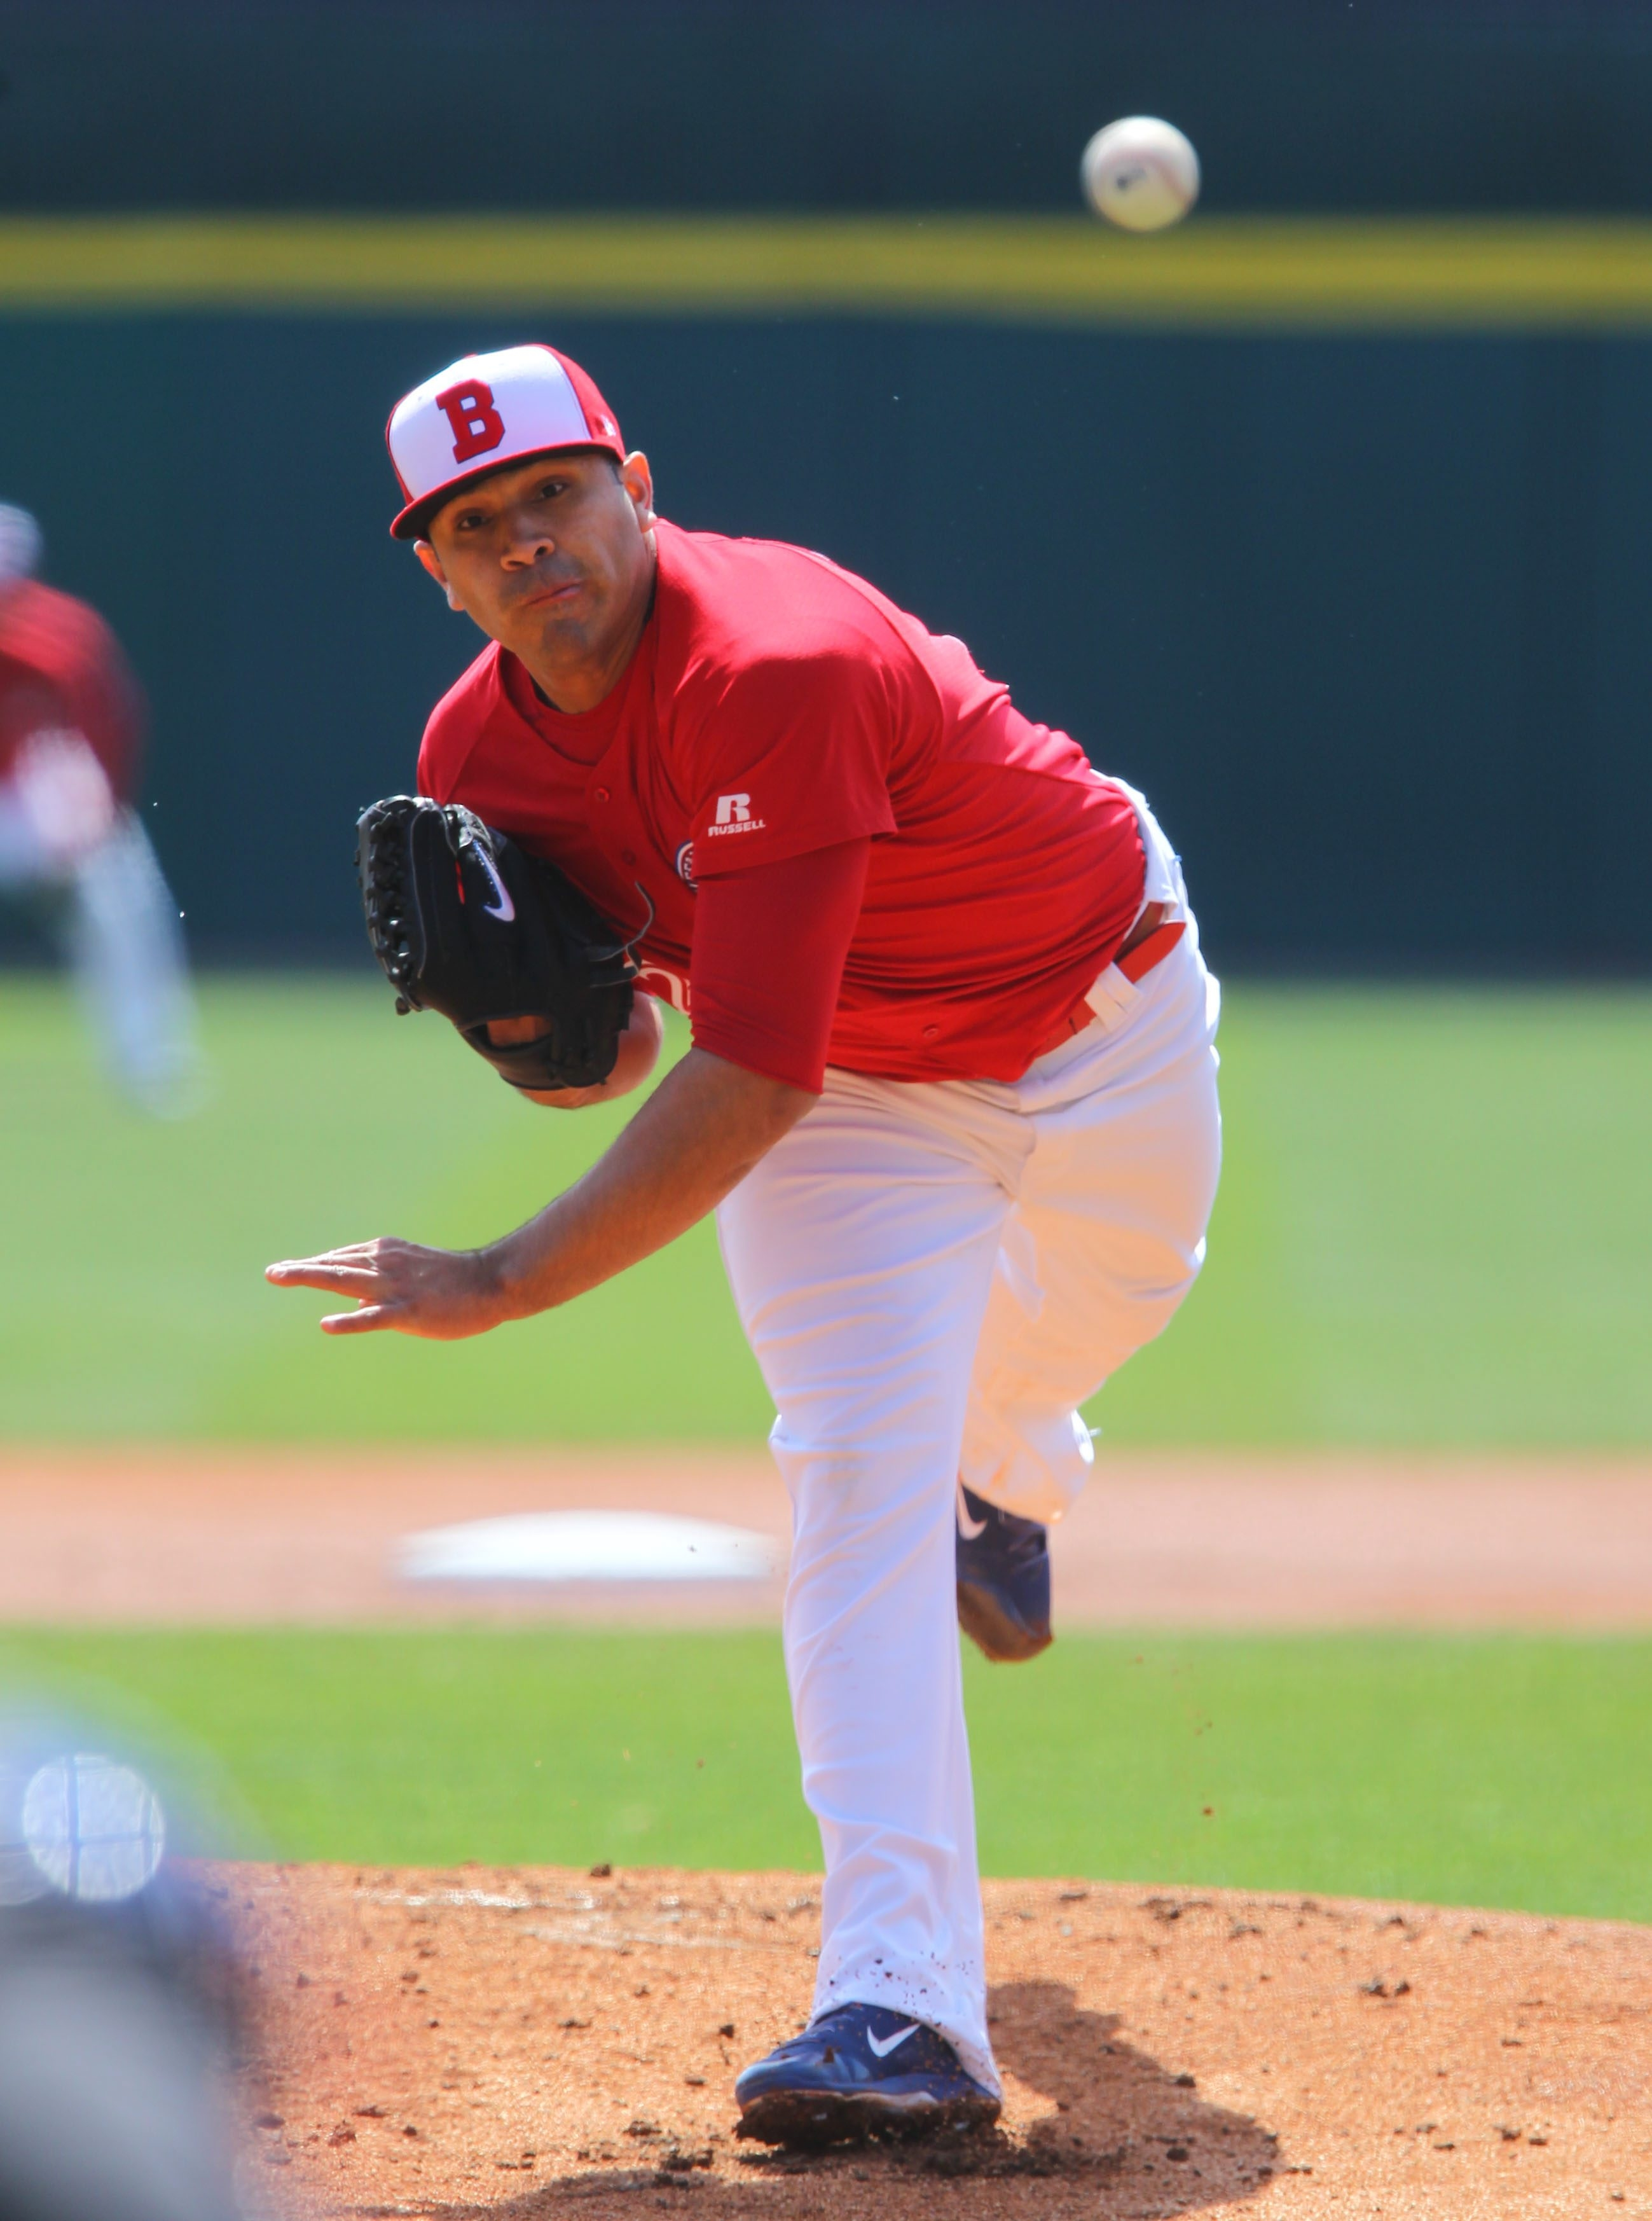 The Bisons' Ricky Romero pitches against Scranton-Wilkes-Barre Thursday afternoon.